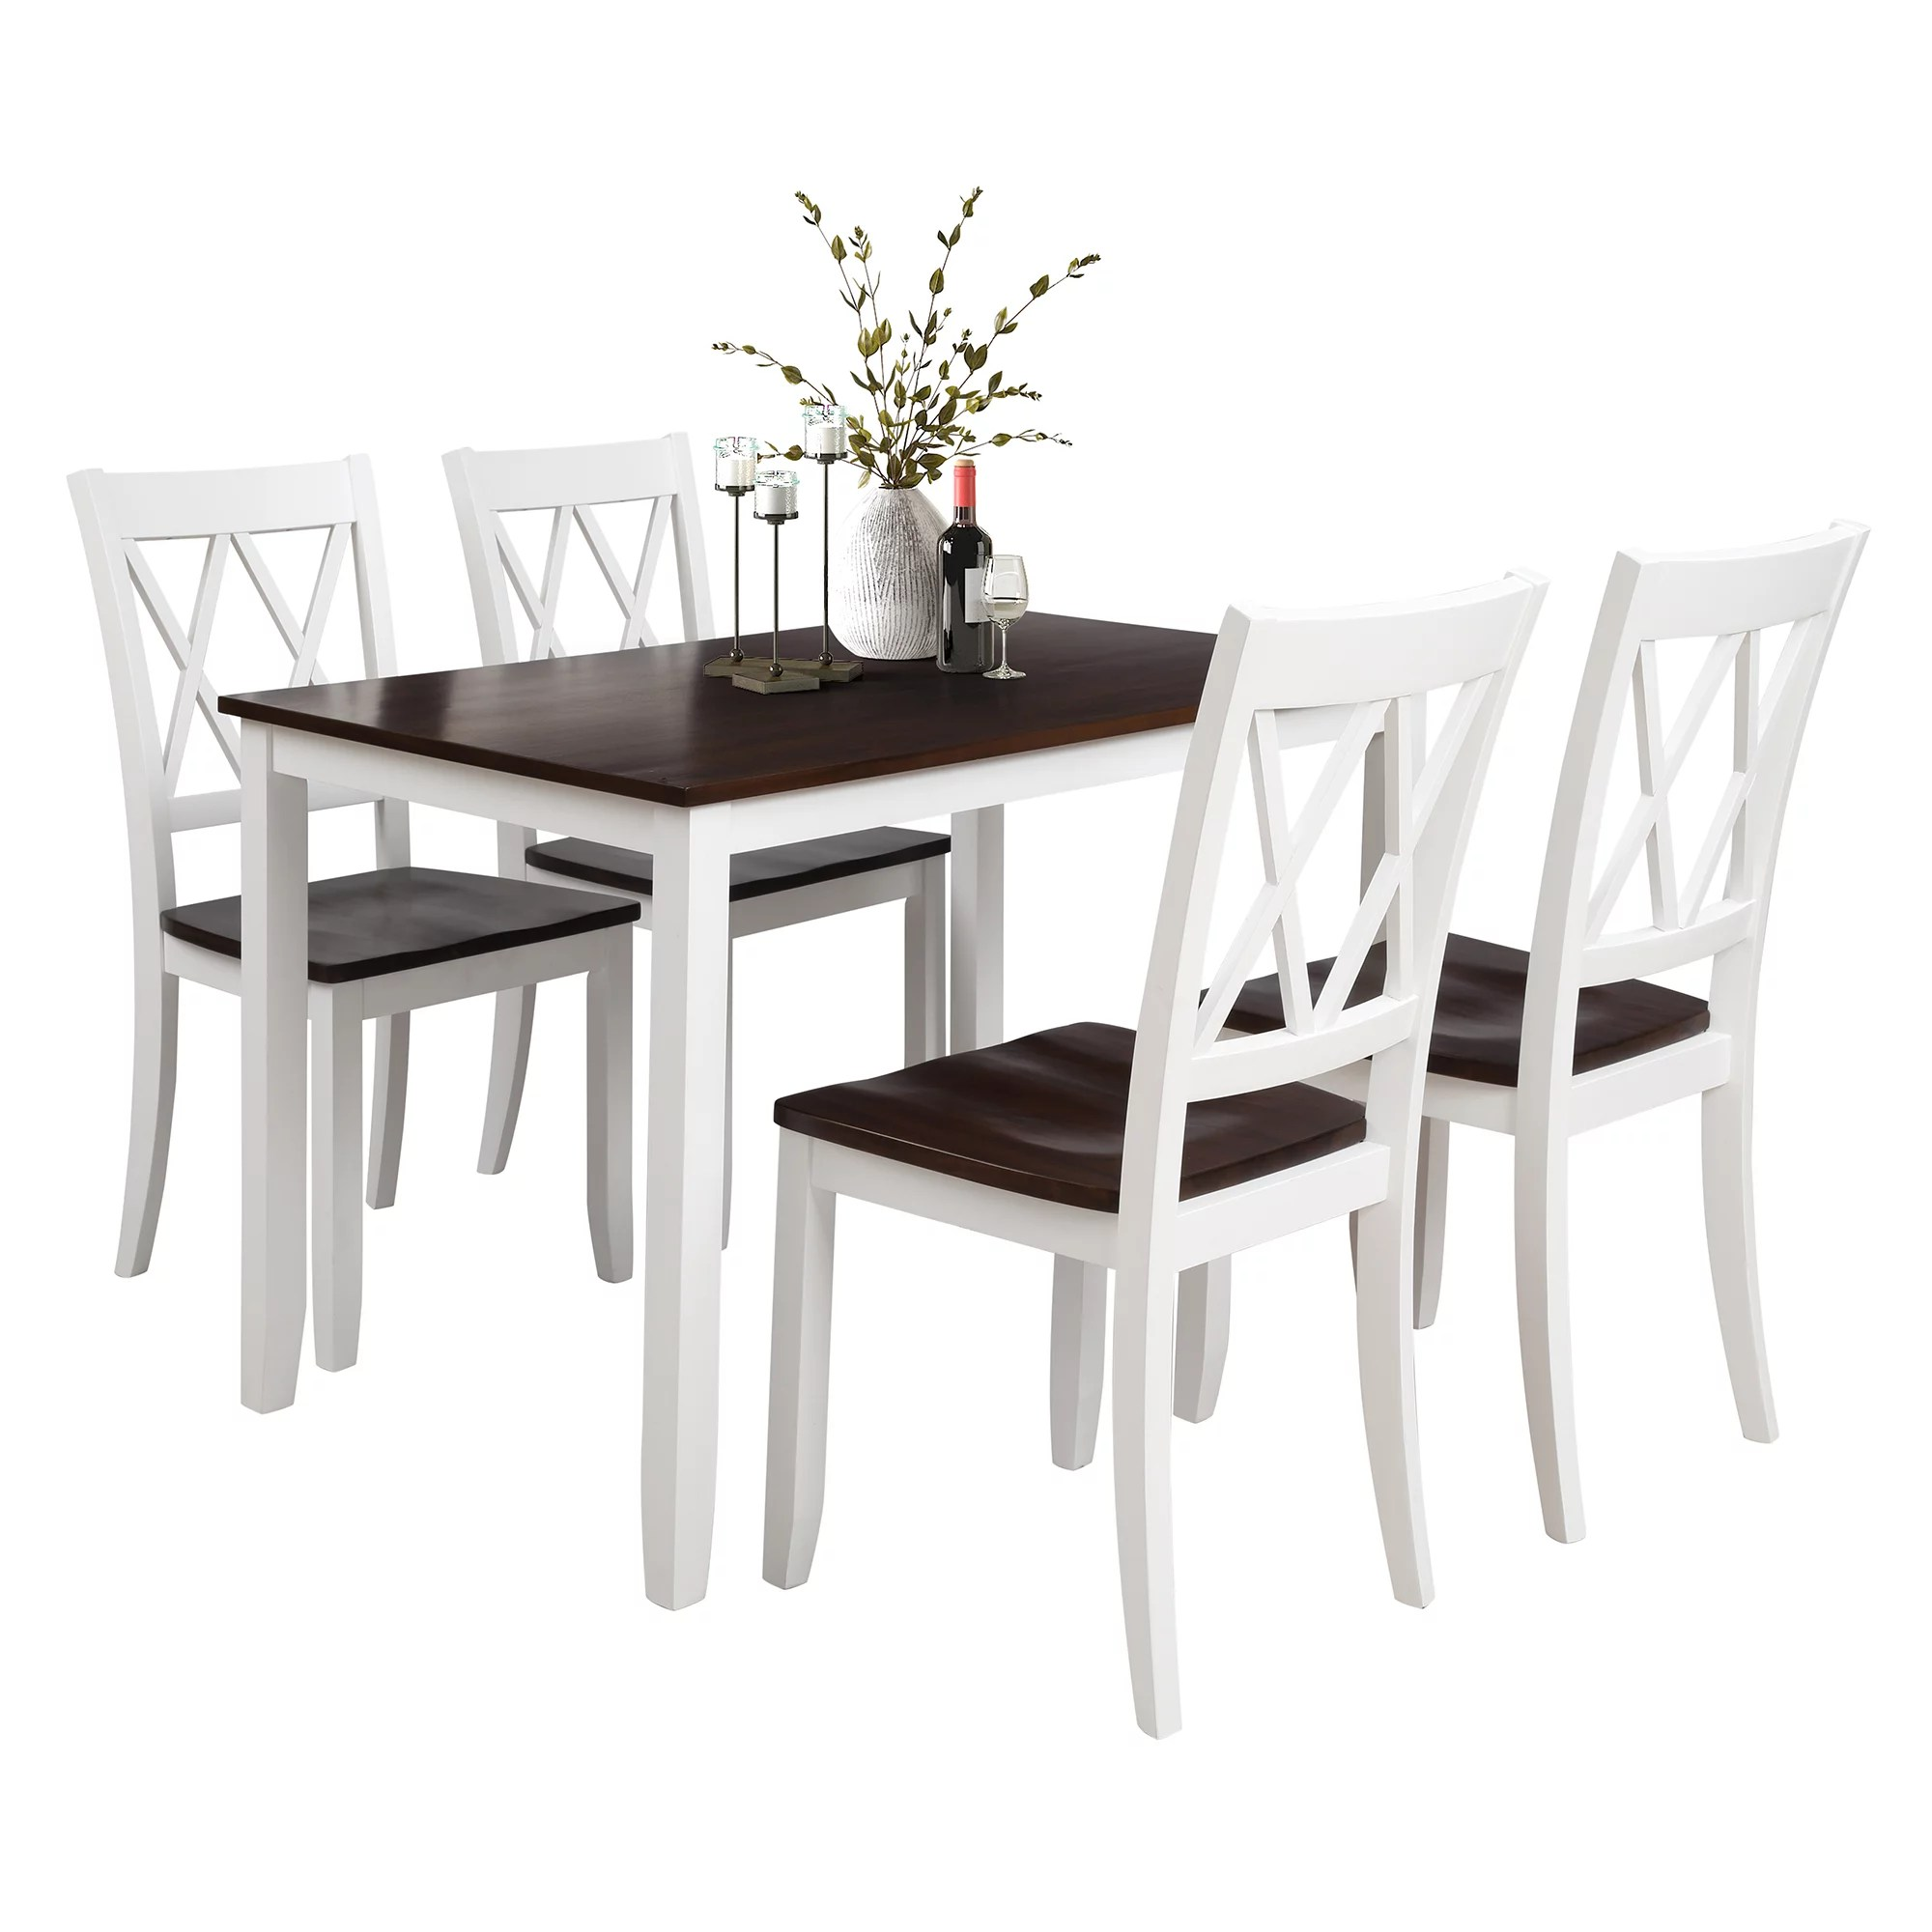 clearance white dining table set for 4 modern 5 piece on dining room sets on clearance id=52270